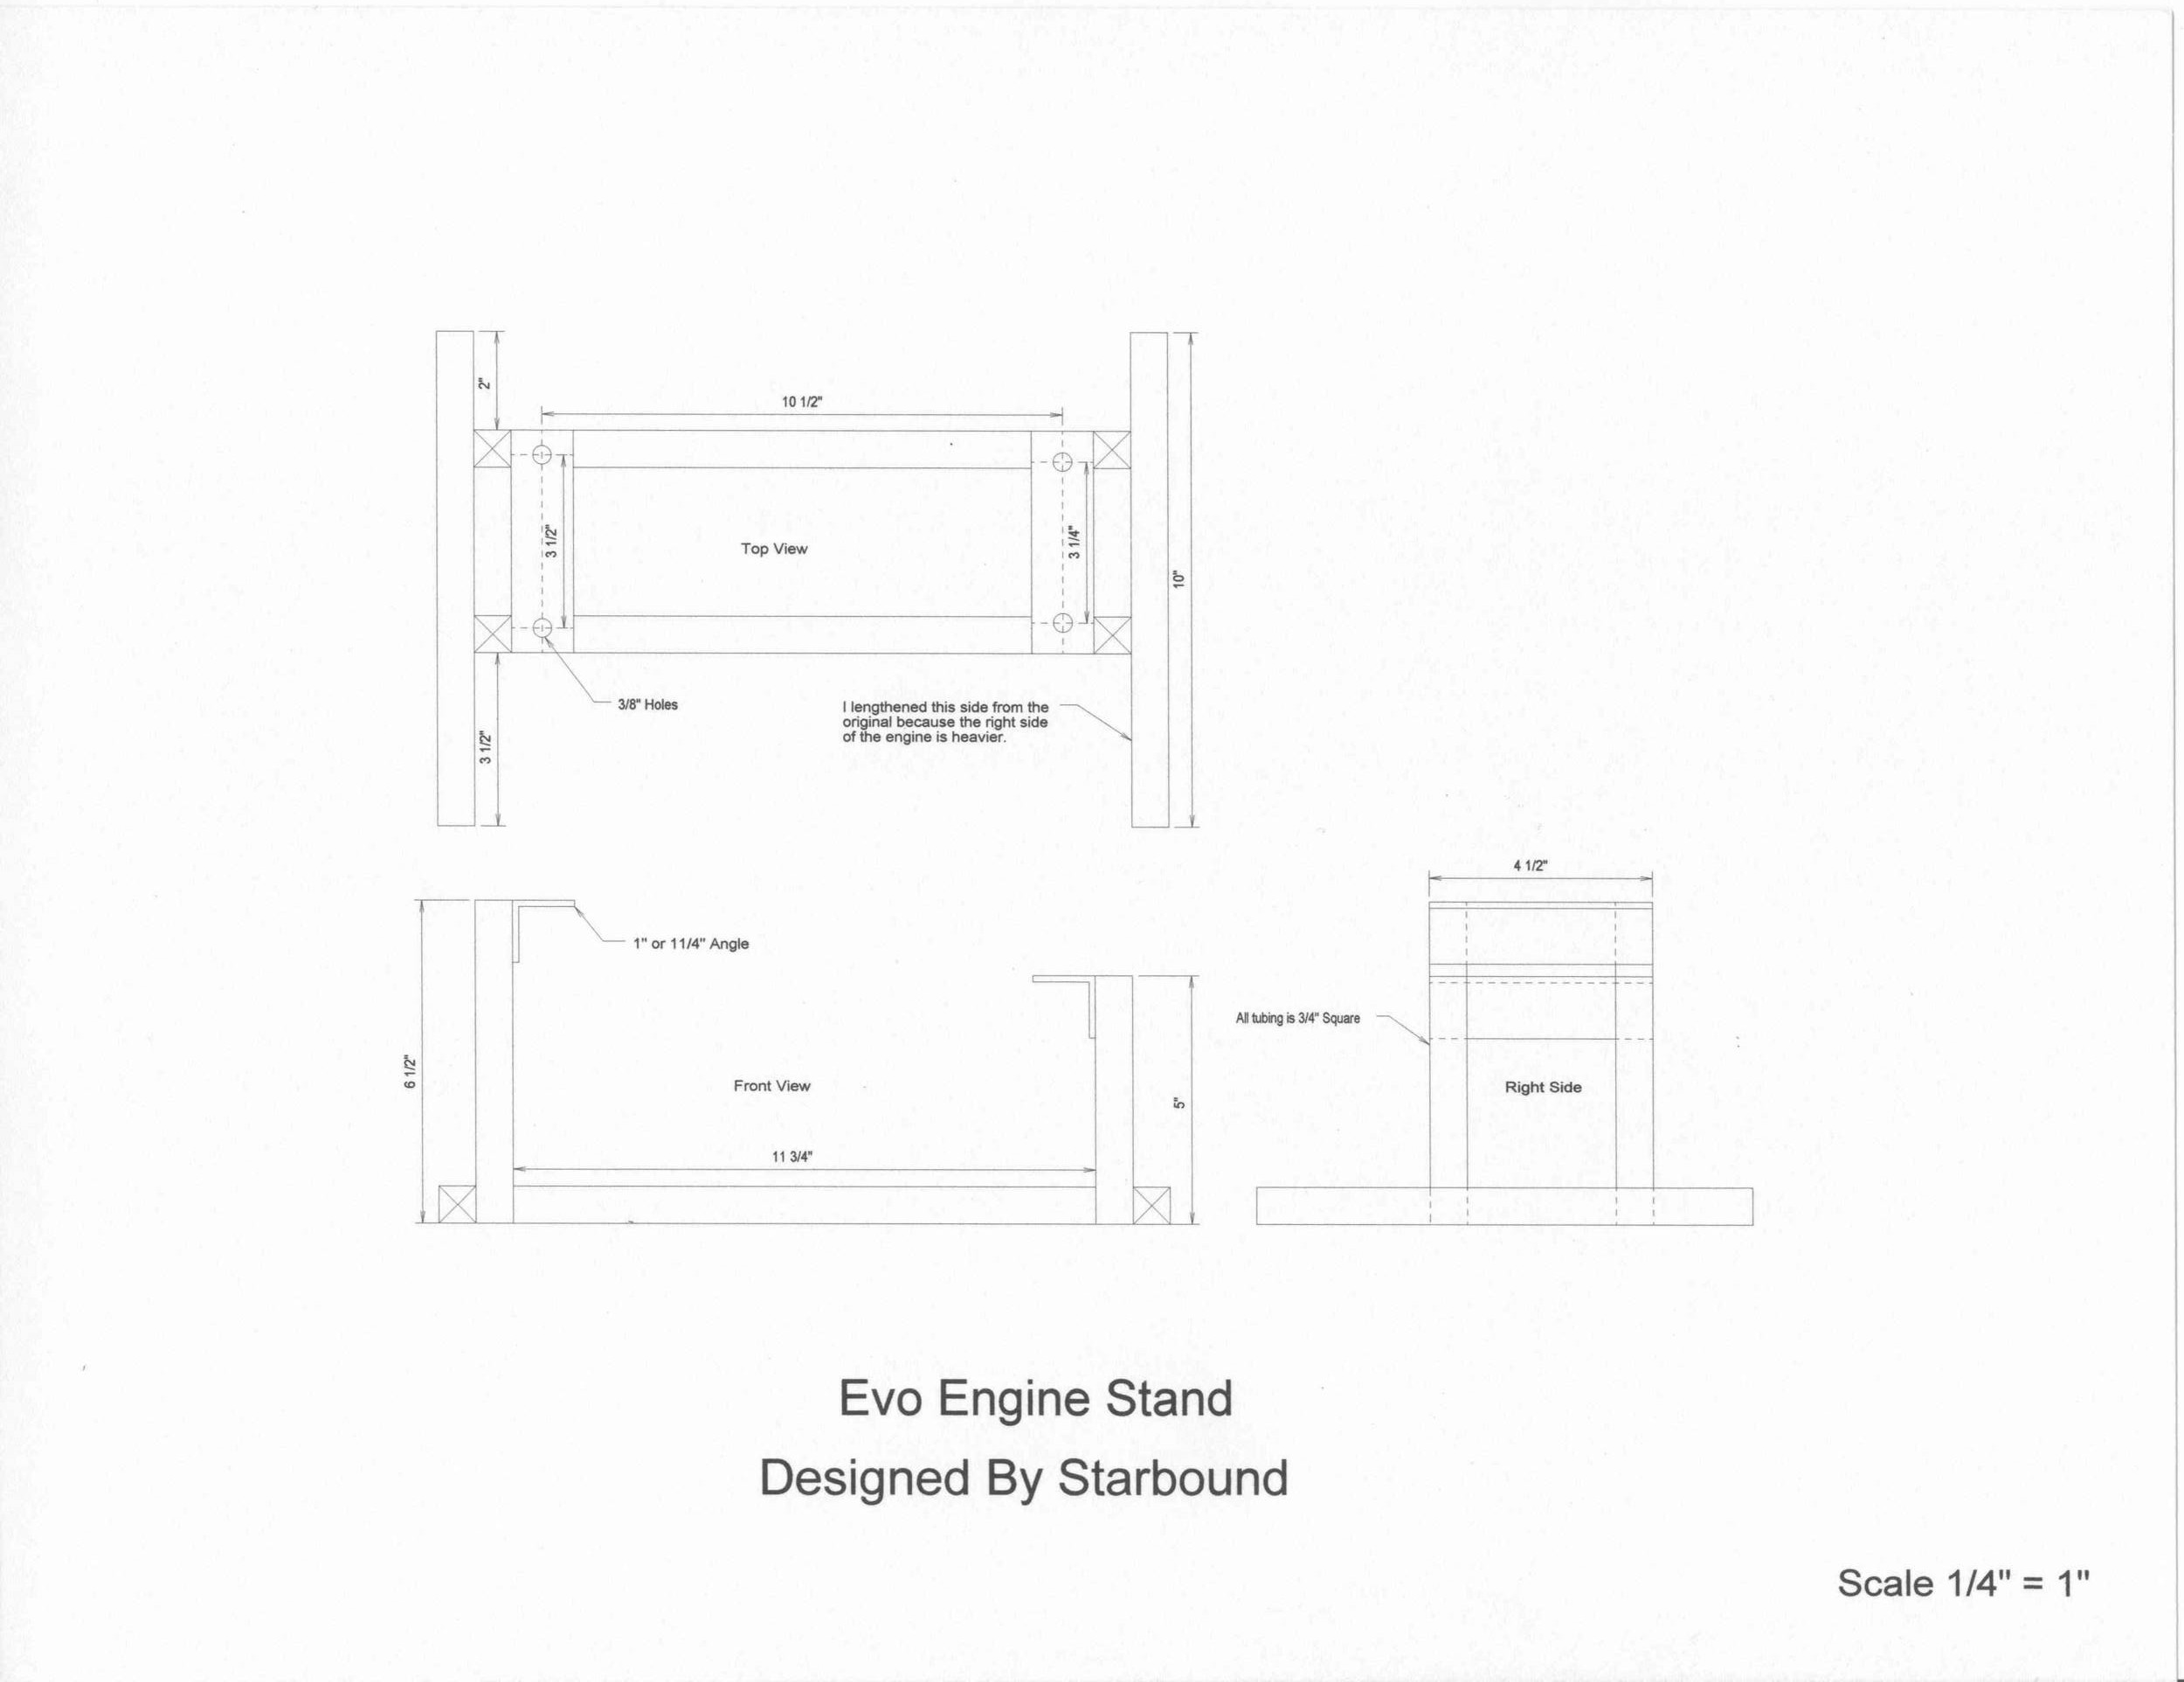 hight resolution of 80 harley evolution engine diagram wiring diagramplans for a harley motor stand u2013 mustaribrandharley